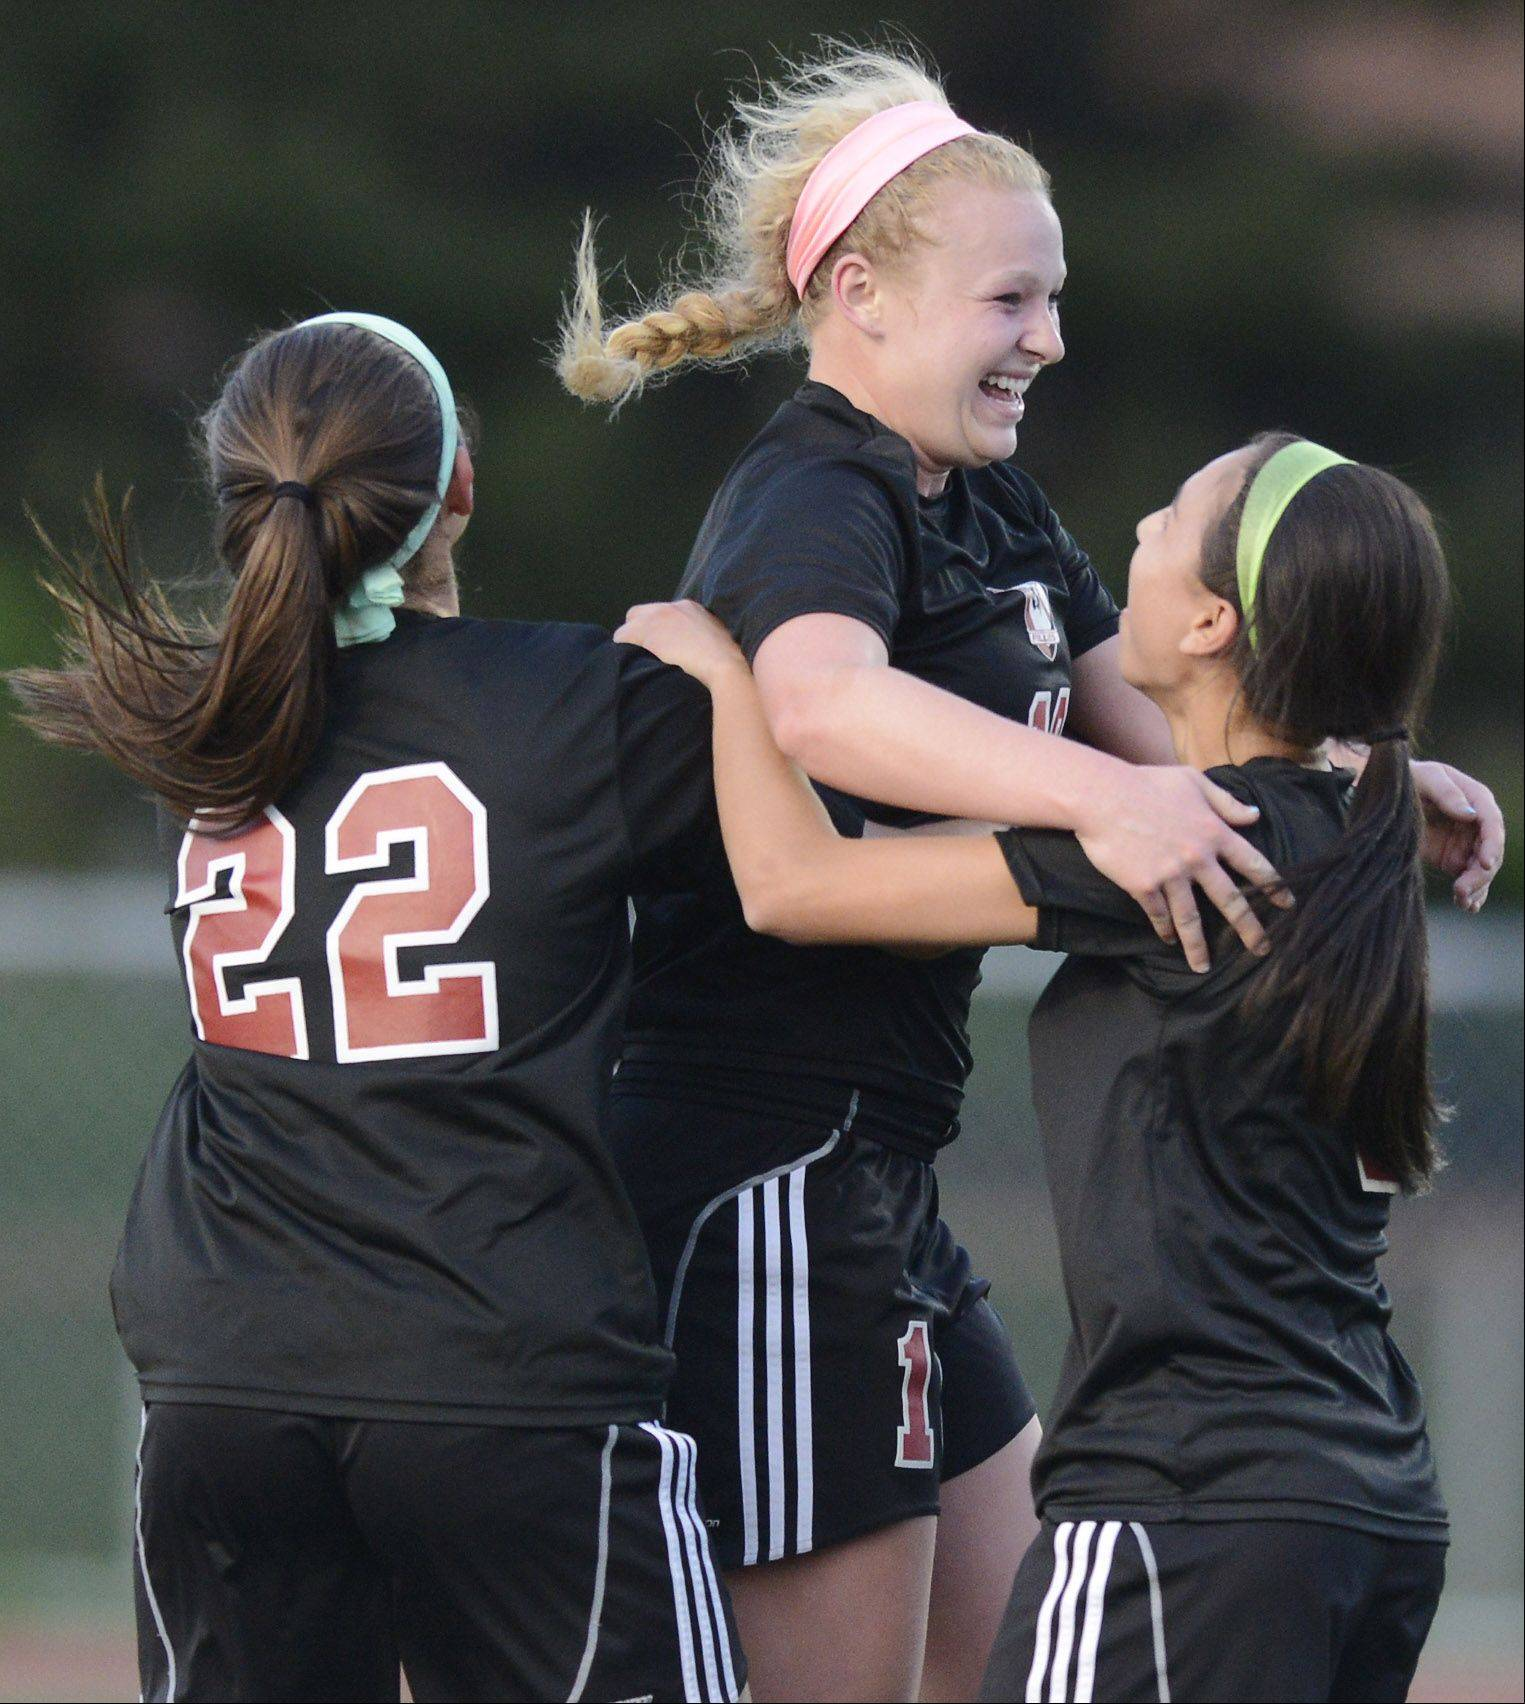 Barrington's Molly Pfeiffer, middle, celebrates her first-half goal with teammates Elli Ackerman, left, and Aimee Pierce during Wednesday's Mid-Suburban League championship game at Buffalo Grove. Pfeiffer had an assist on the game's second goal as Barrington won 2-0.